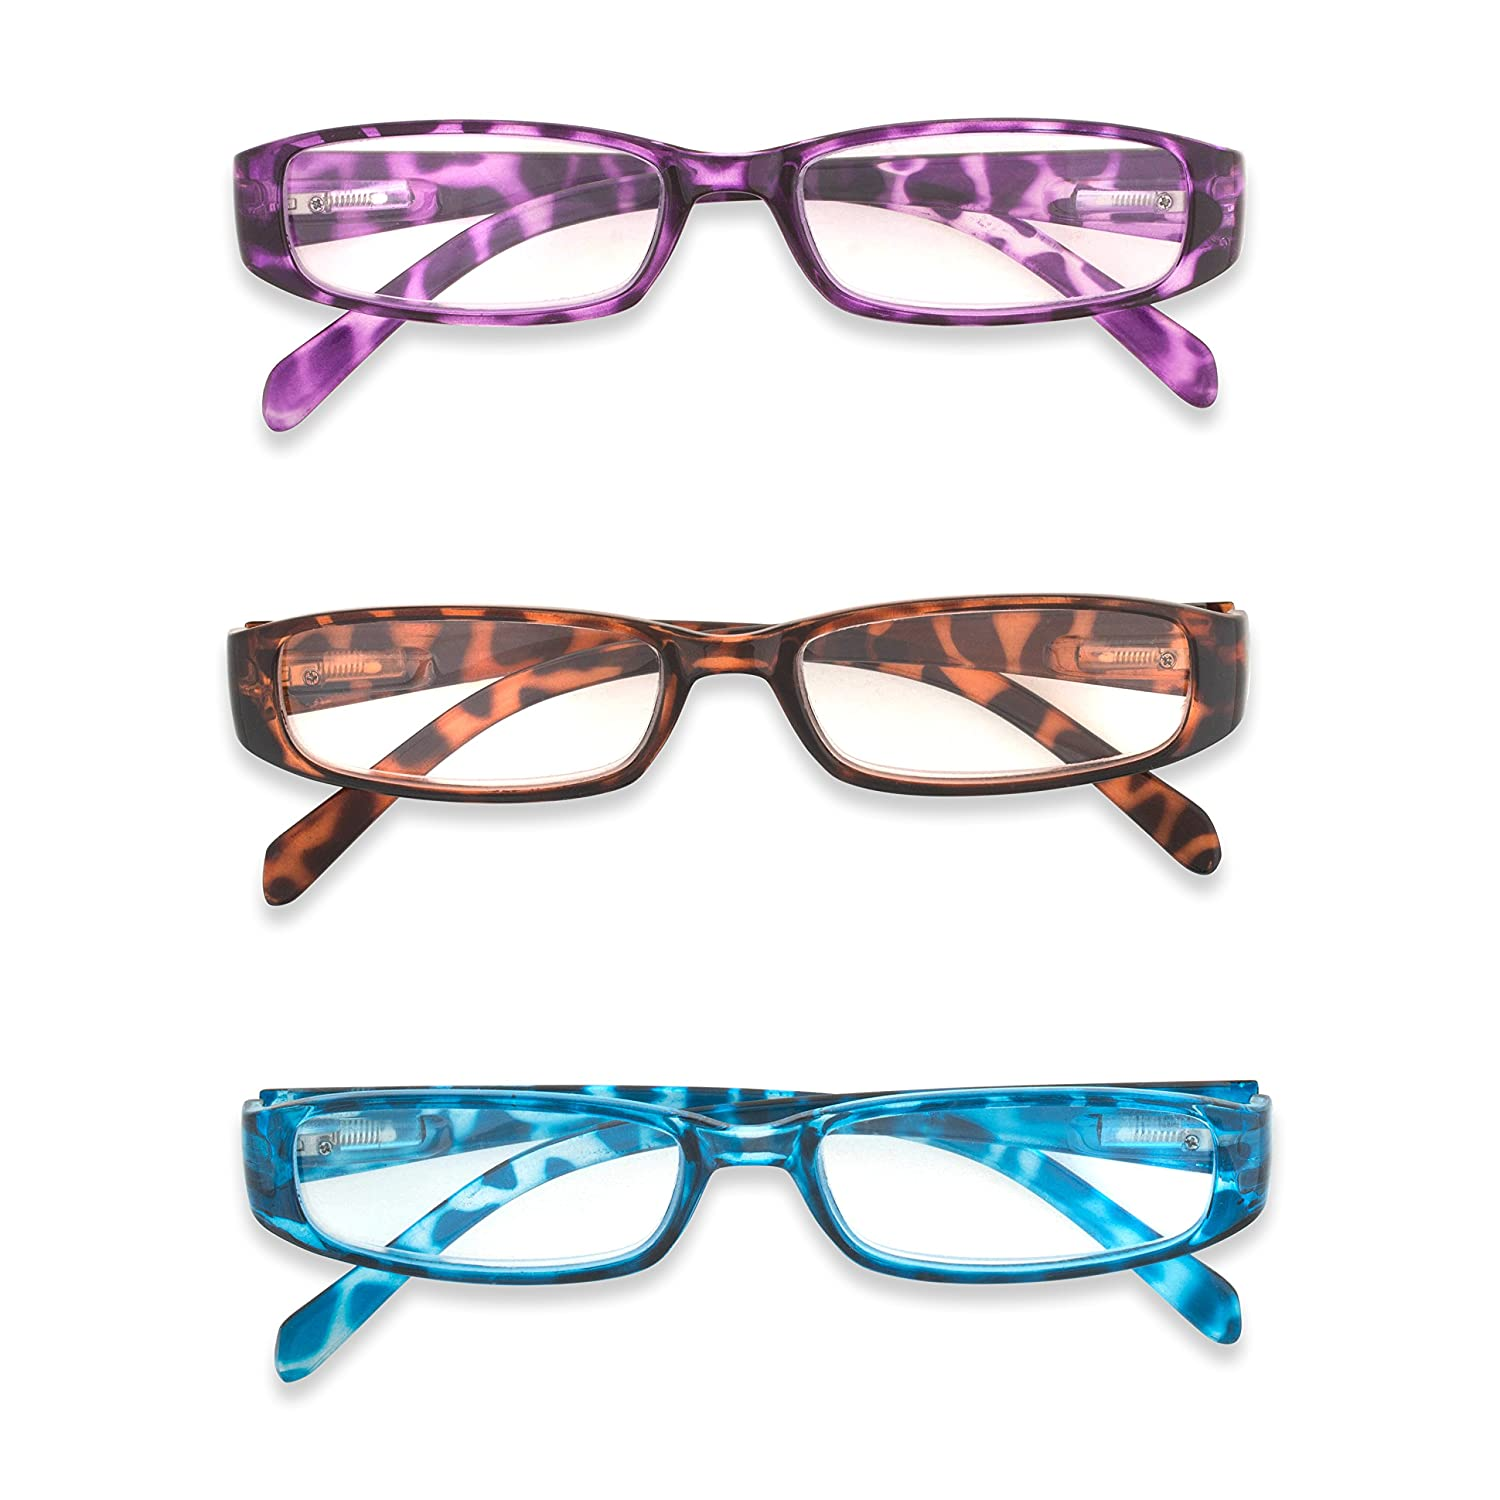 0138aa3dfb5e Amazon.com  Inner Vision Women s 3-Pack Leopard Print Reading Glasses Set  w Spring Hinges - (2.25 x Magnification) - Purple